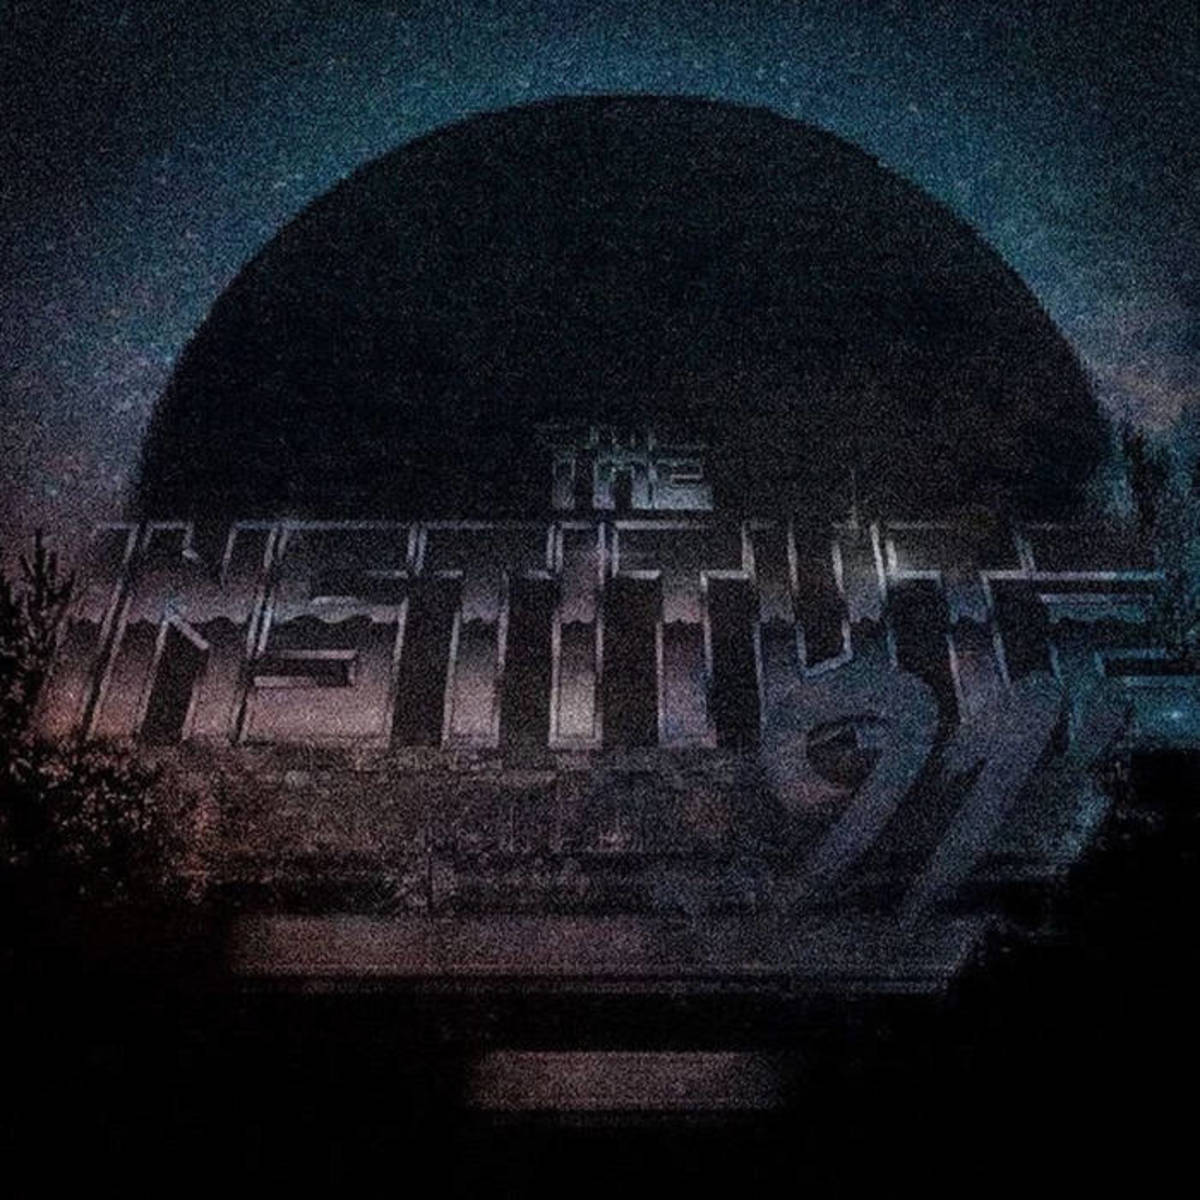 """Synth Album Review: """"Percipience"""" by The Institute 91'"""